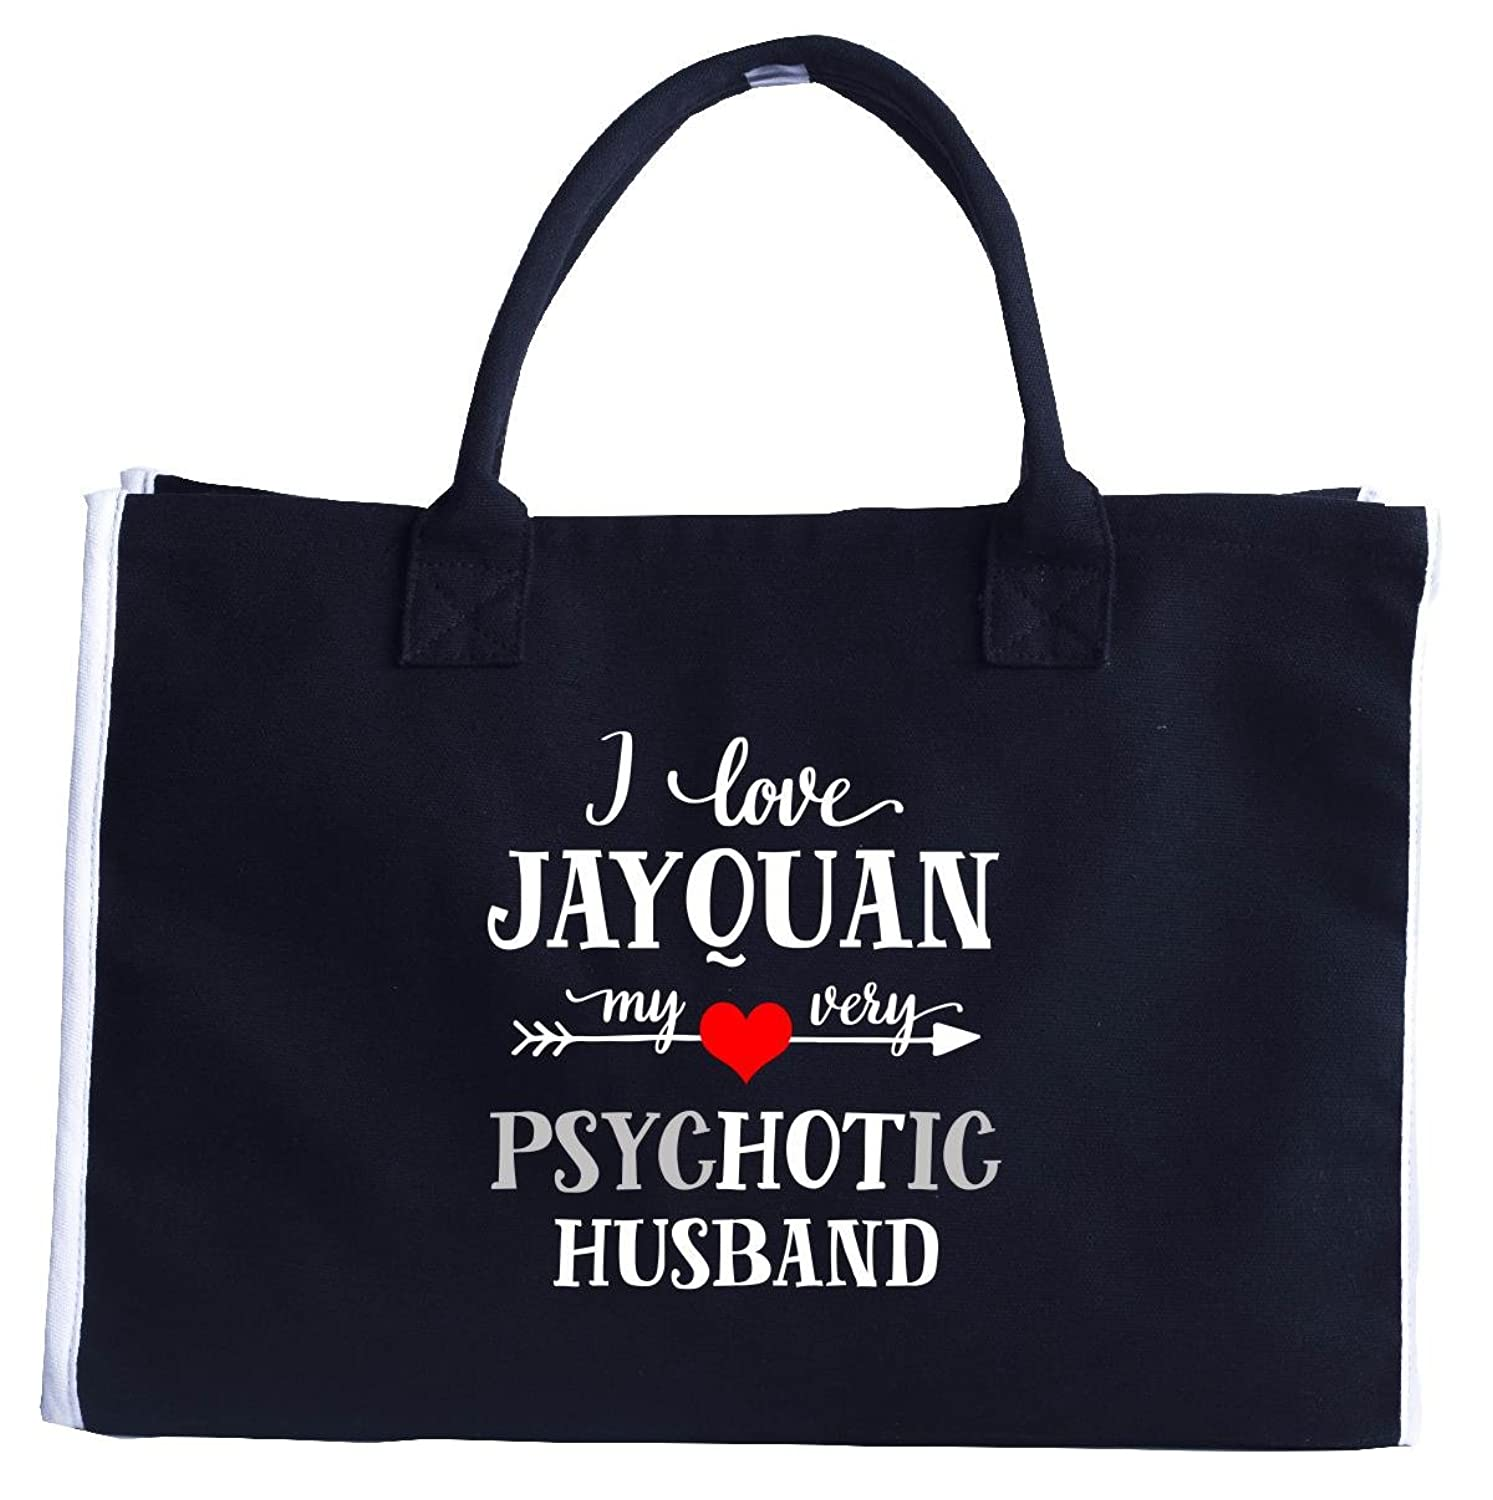 I Love Jayquan My Very Psychotic Husband. Gift For Her - Fashion Tote Bag